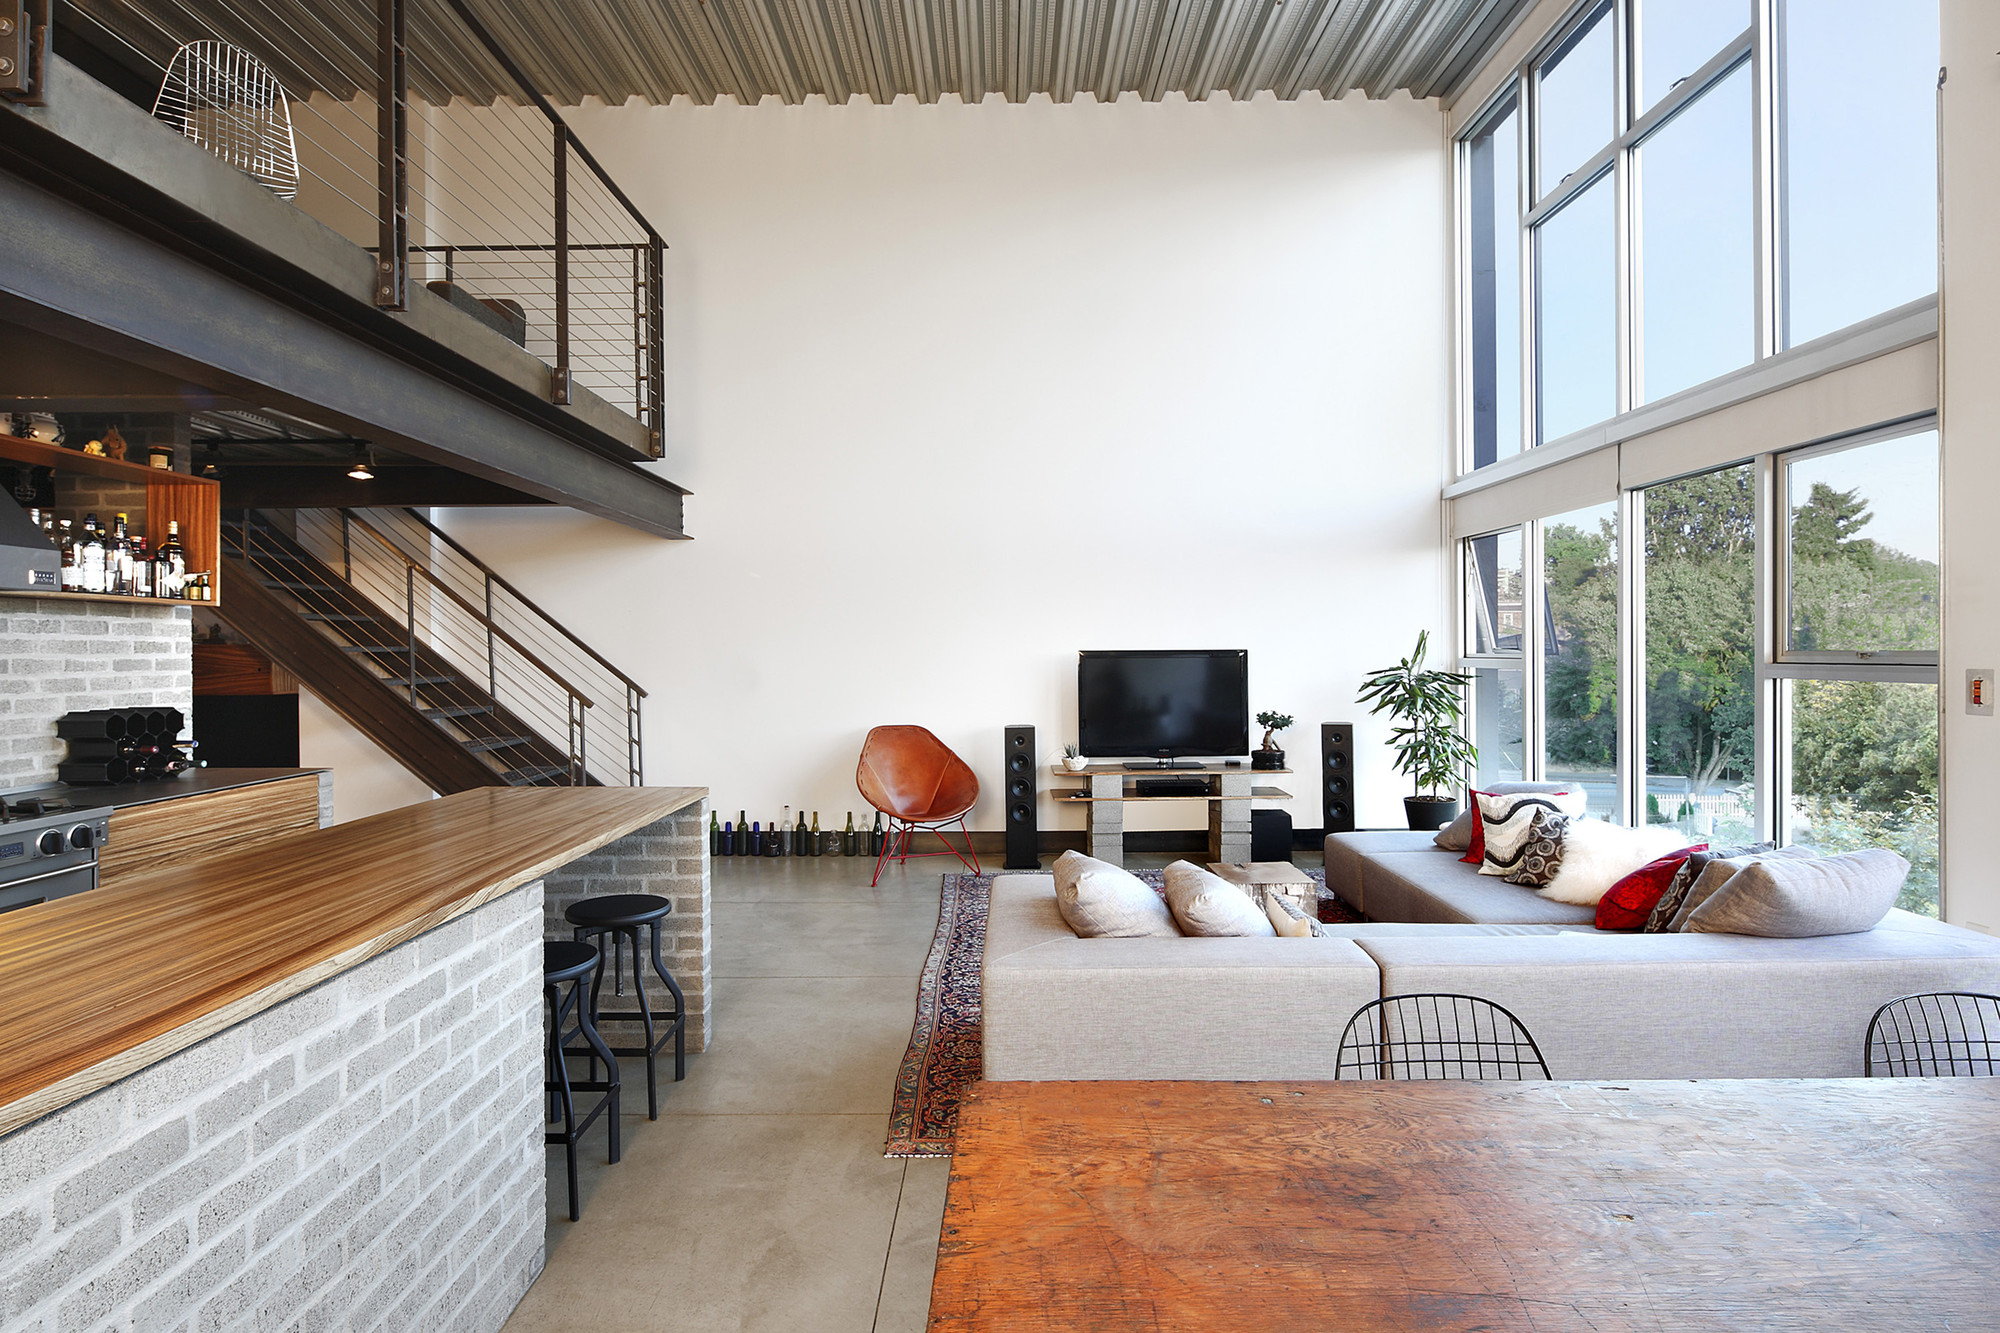 How To Use Lighting To Make A Space Truly Beautiful: 4 Examples That Show How The Pros Do It